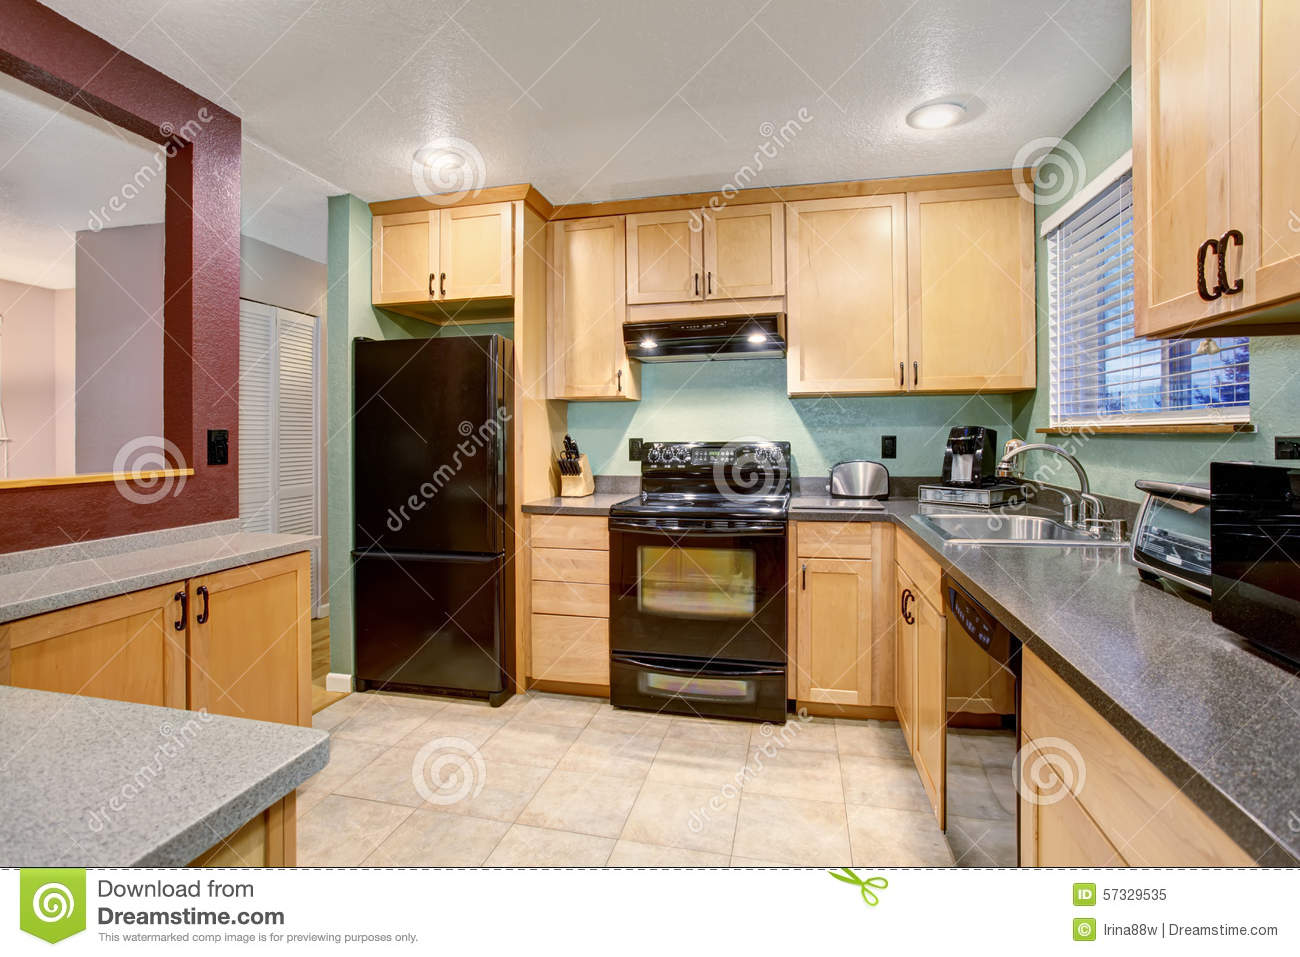 american light wood kitchen interior small house apartment type typical tile floor birch tree cabinets black color 57329535